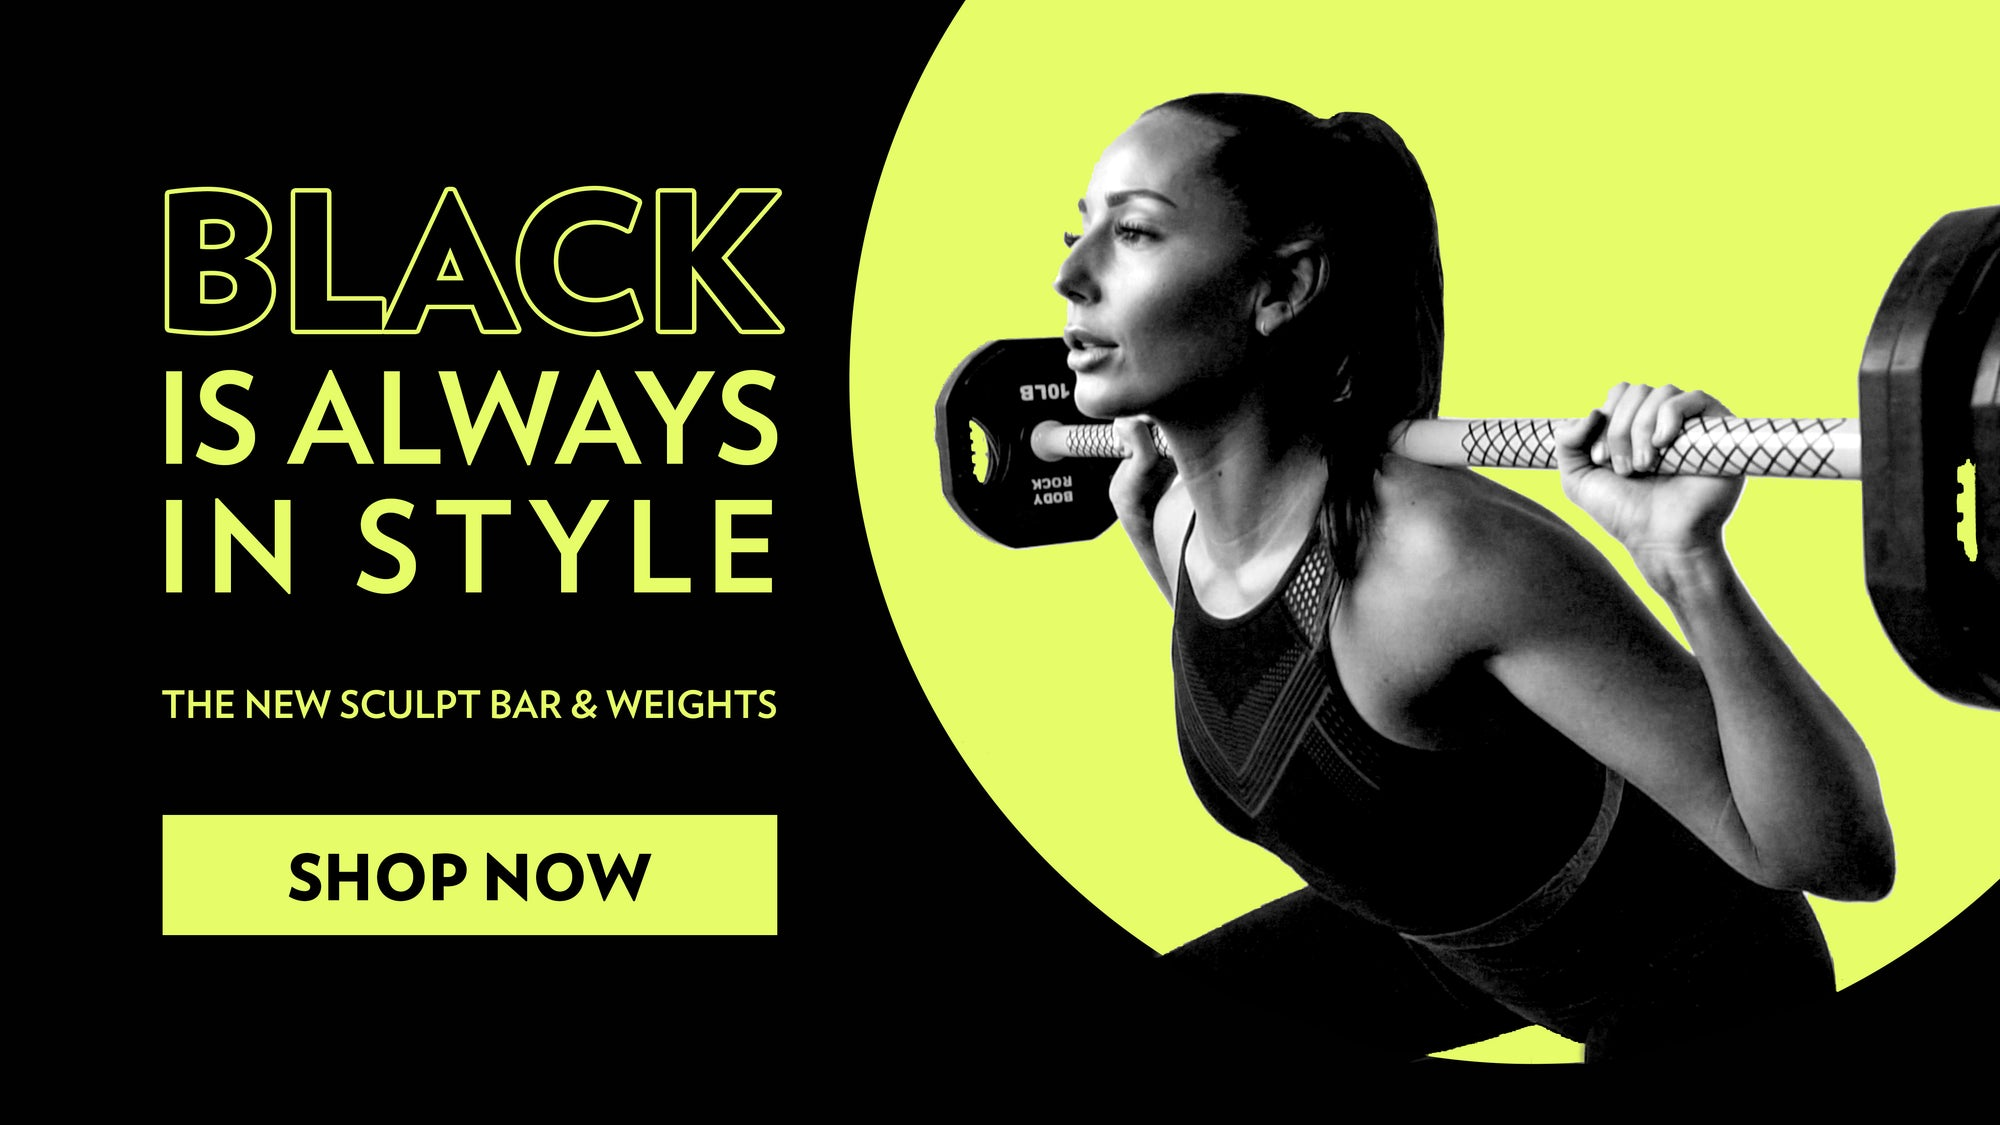 Image of banner featuring Bodyrock Trainer weight lifting a Bodyrock Black Sculpt Barbell with Black weights performing squats with a green background with text on left BLACK Is ALWAYS In STYLE - The new sculpt bar & Weights with a Shop now button